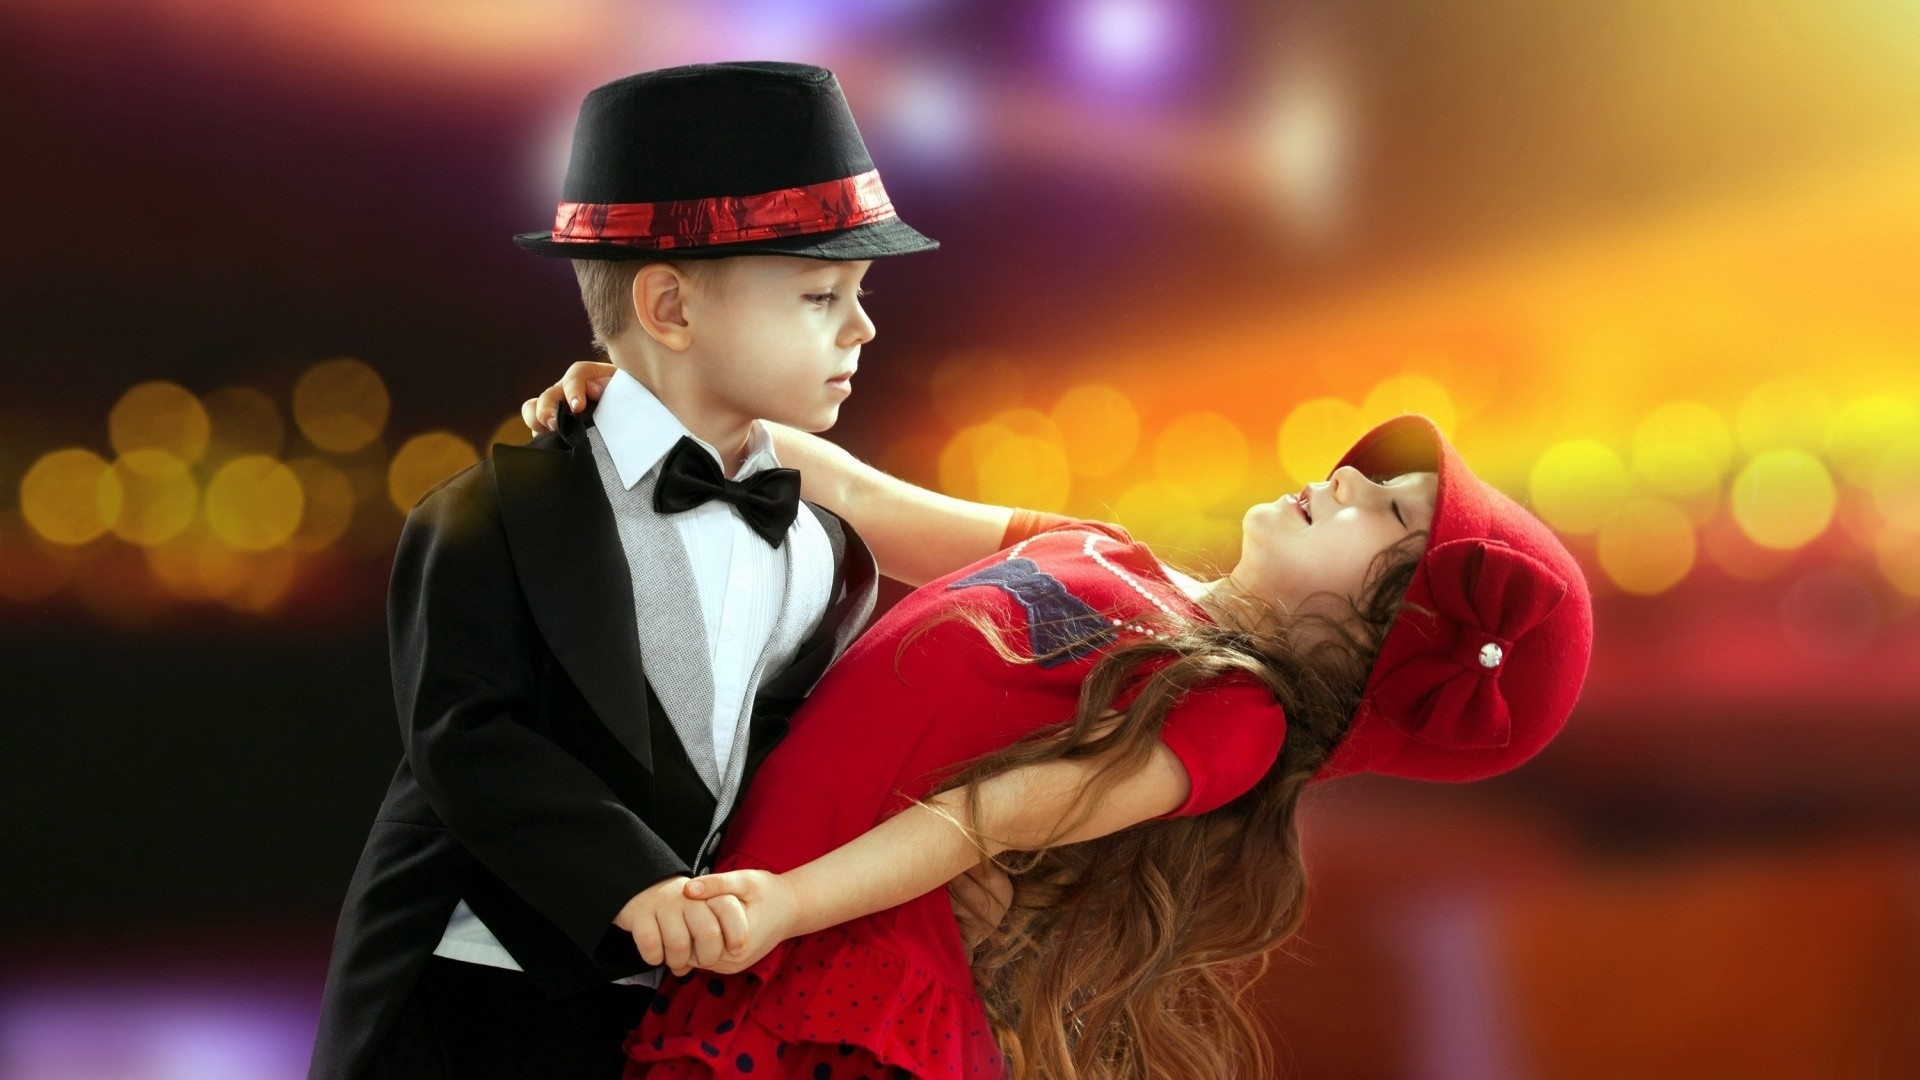 Boy And Girl Wallpapers 70 Images